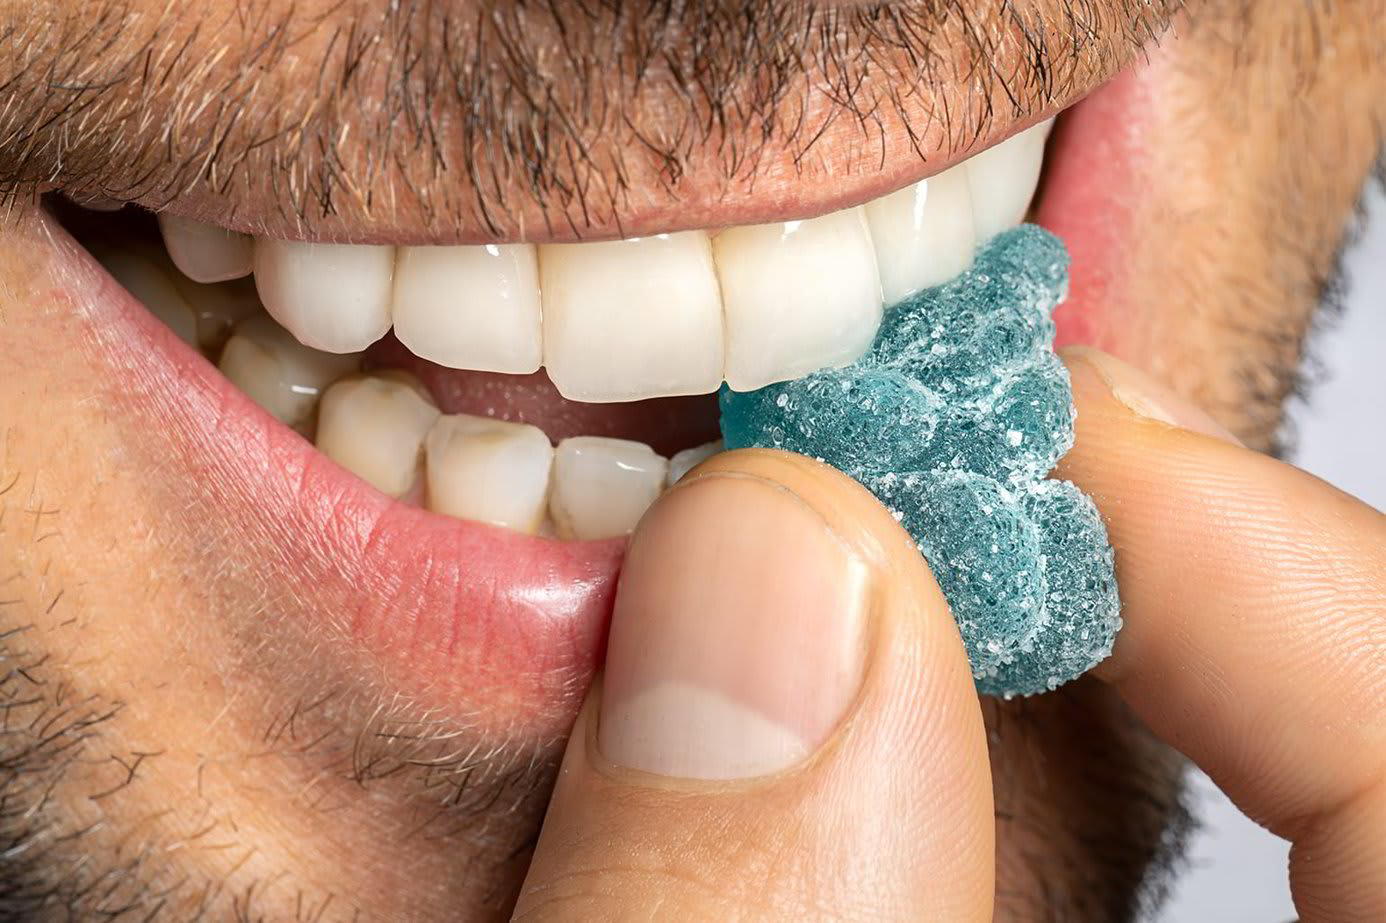 A man bites into a blue gummy